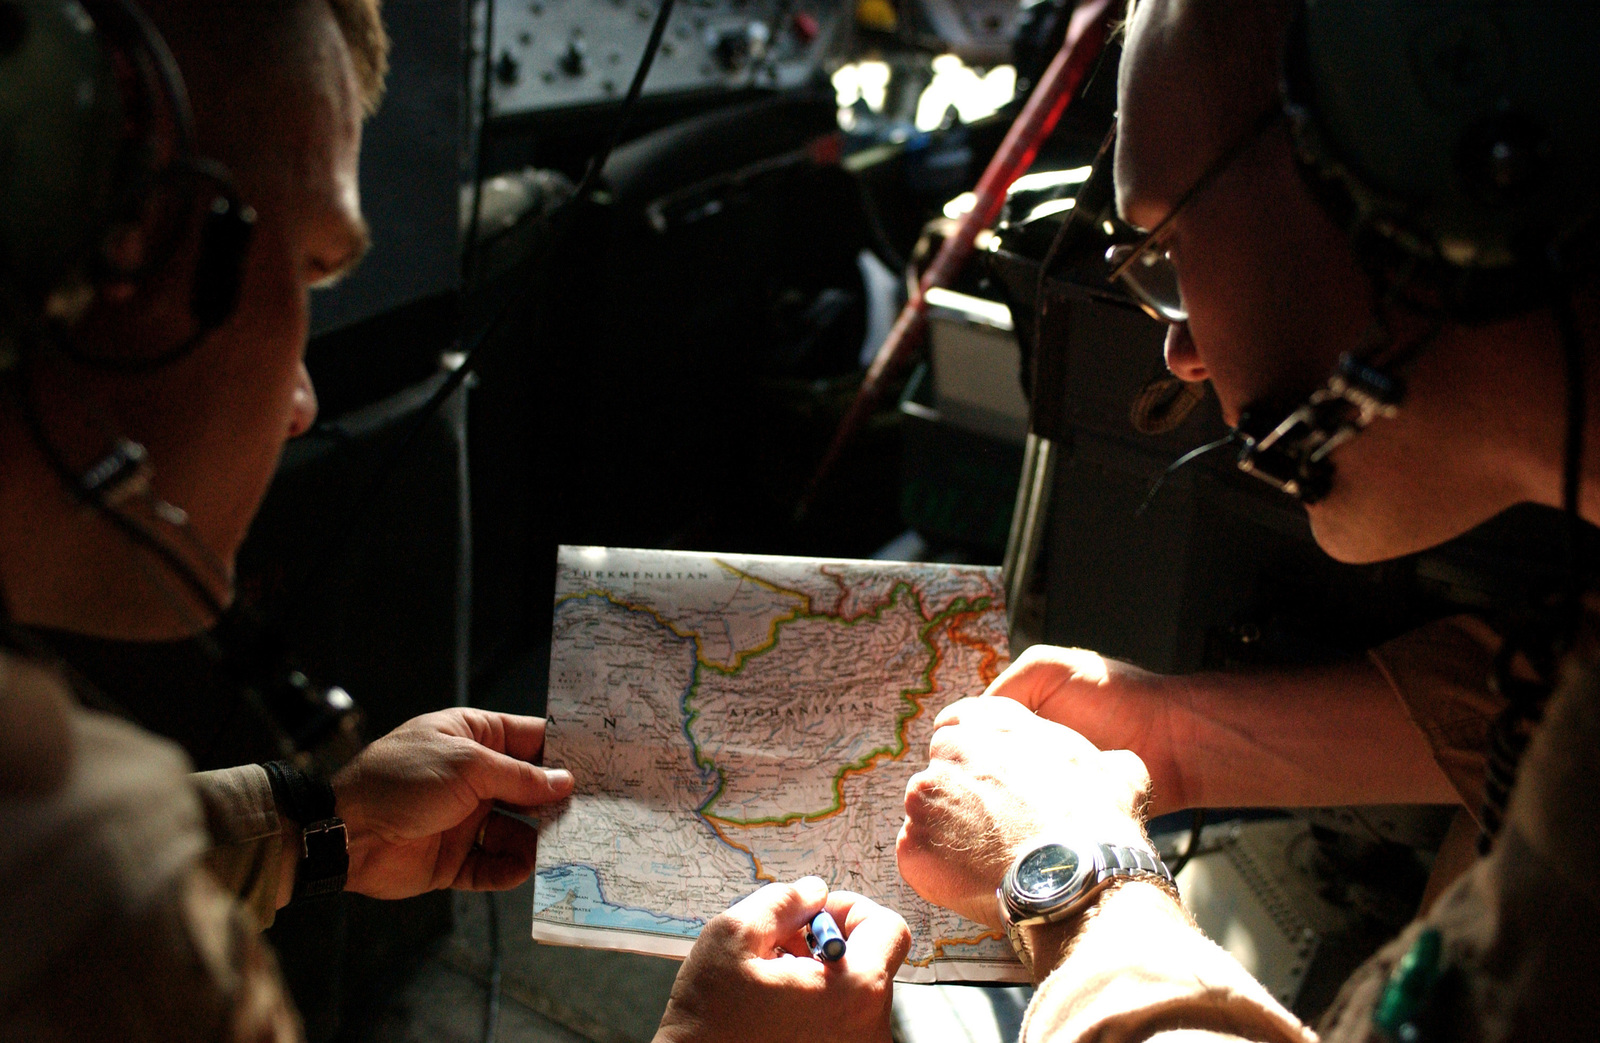 US Army (USA) Colonel (COL) Bob Derrick, USA Corps of Engineers (USACE), Transatlantic Program Center and US Air Force (USAF) First Lieutenant (1LT) Brian Knudson, a C-130 Hercules navigator with the 772nd Expeditionary Airlift Squadron (EAS), study a map of Southwest Asia at a forward-deployed location, prior to flying a mission in support of Operation ENDURING FREEDOM